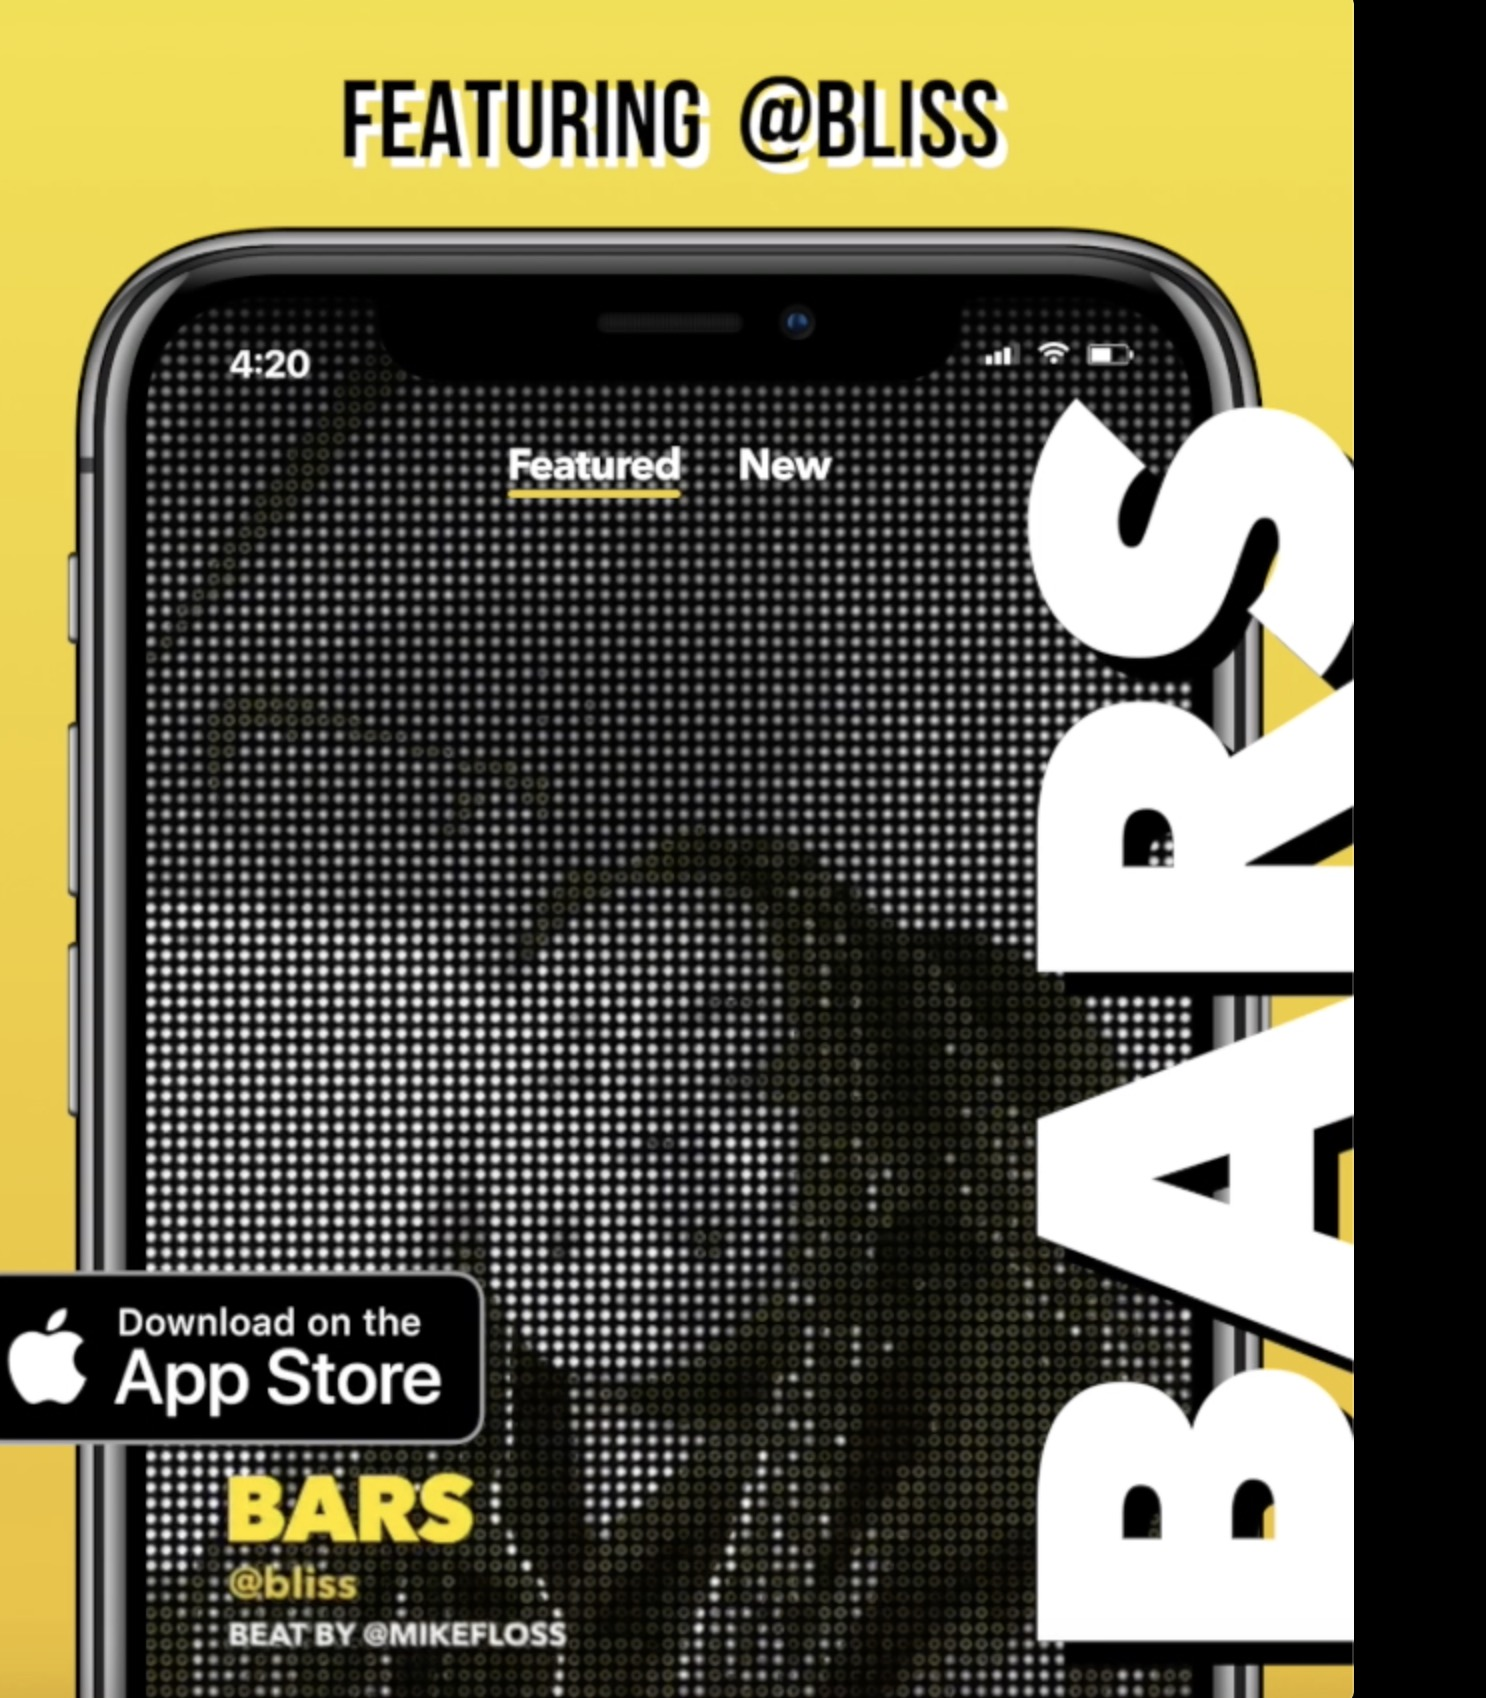 Facebook launches BARS, a TikTok-like app for creating and sharing raps